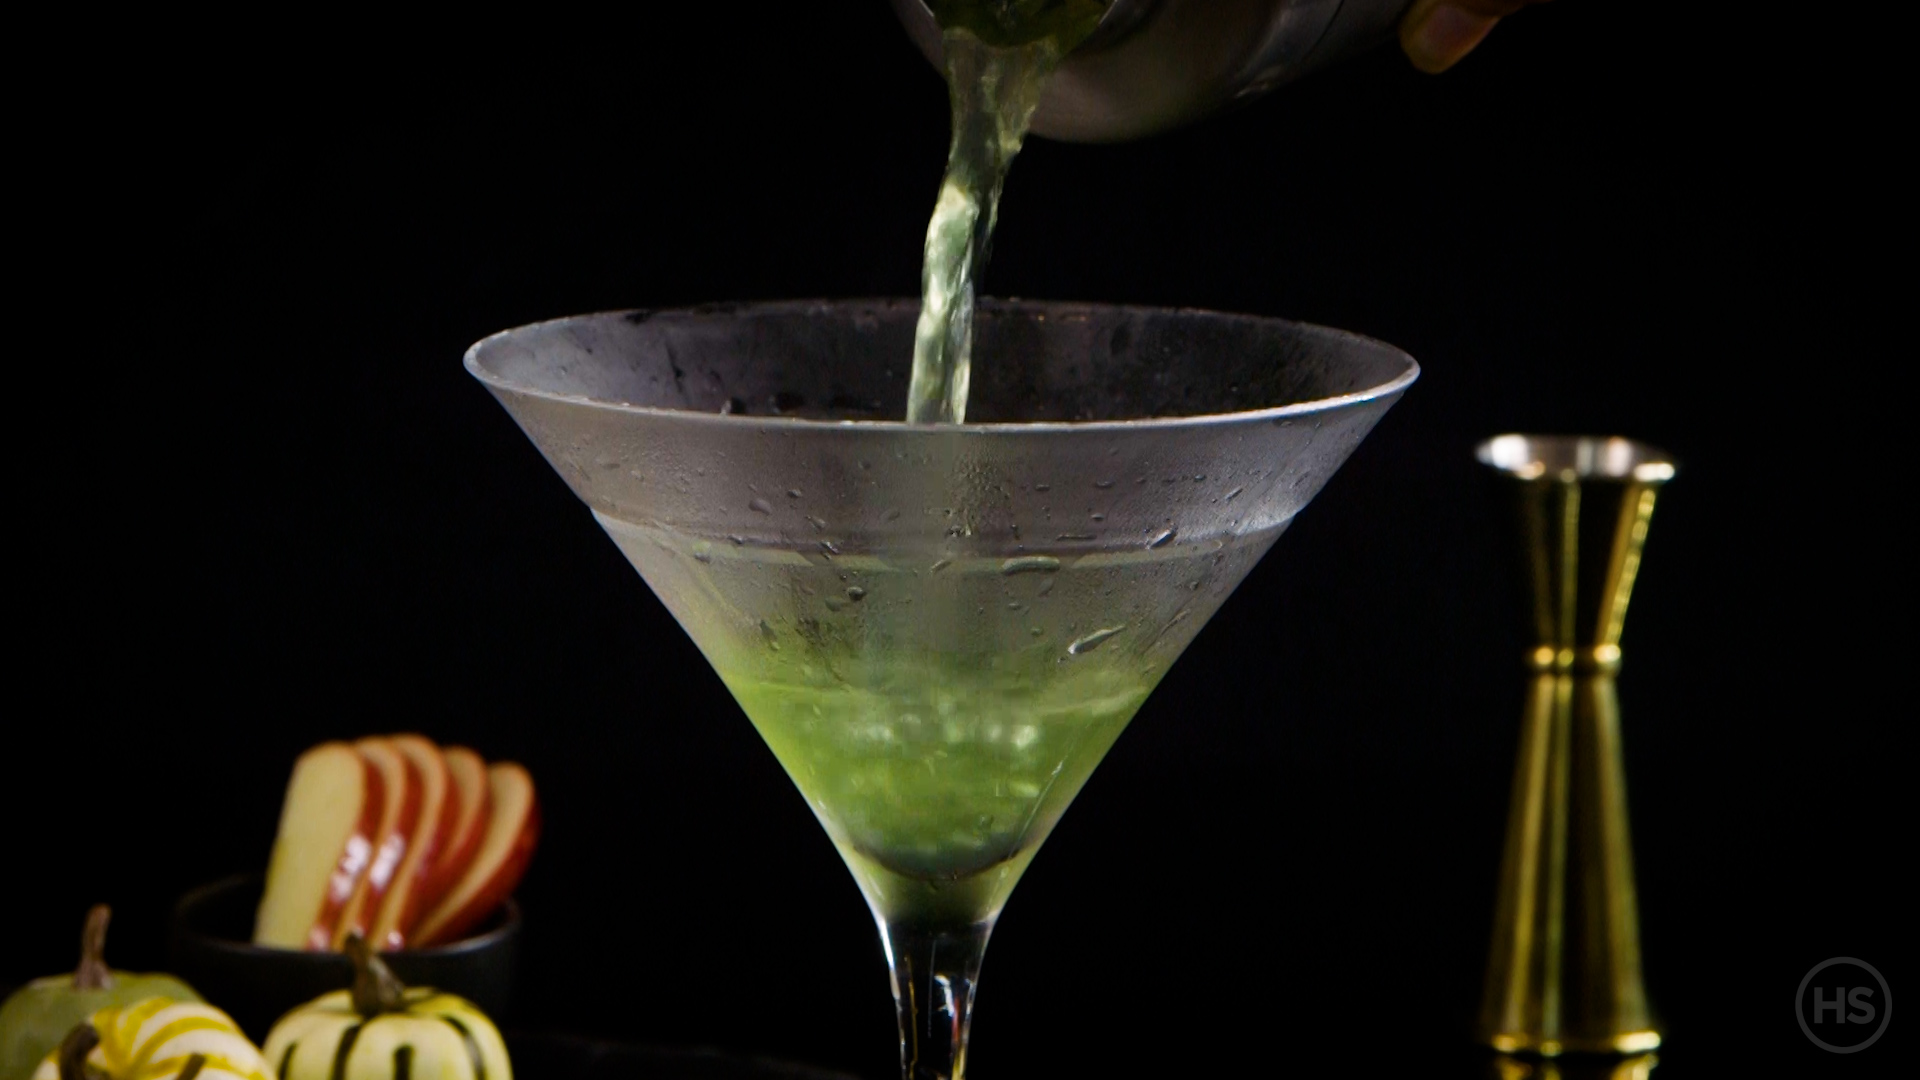 How to make a poison apple cocktail